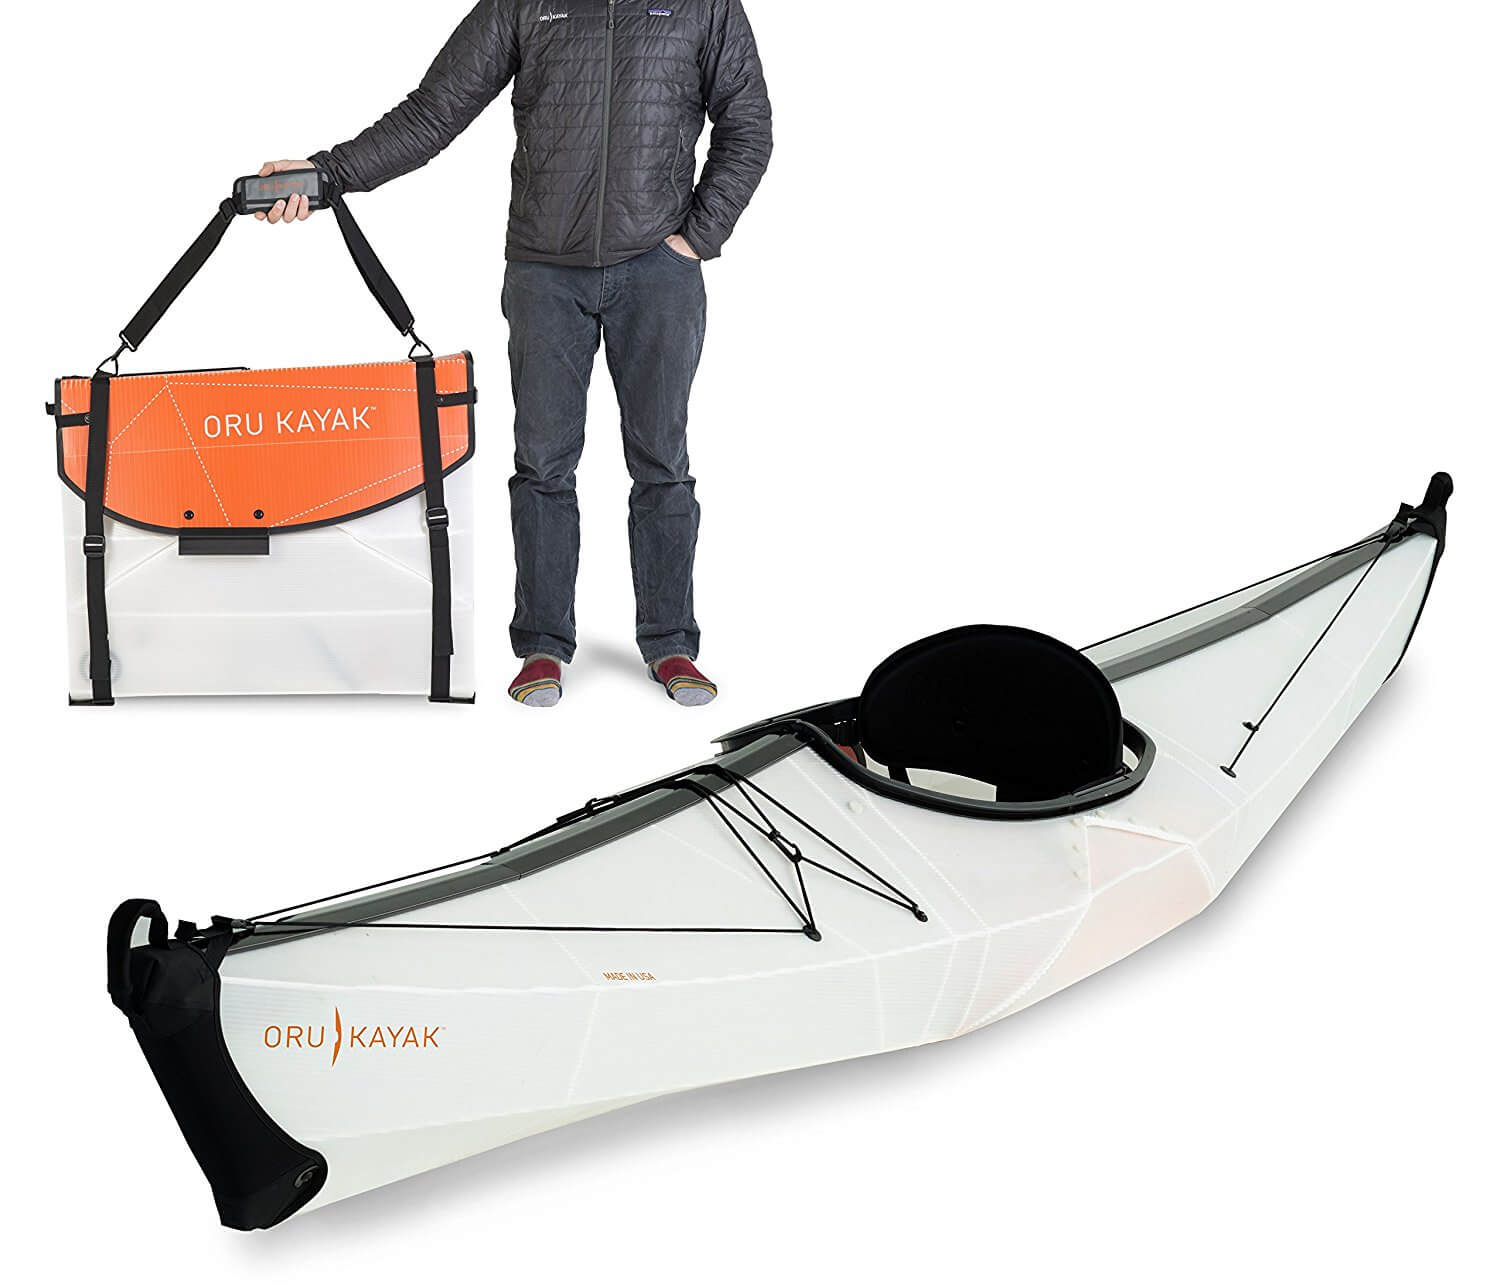 Oru Kayak BayST Folding Portable Lightweight Kayak review